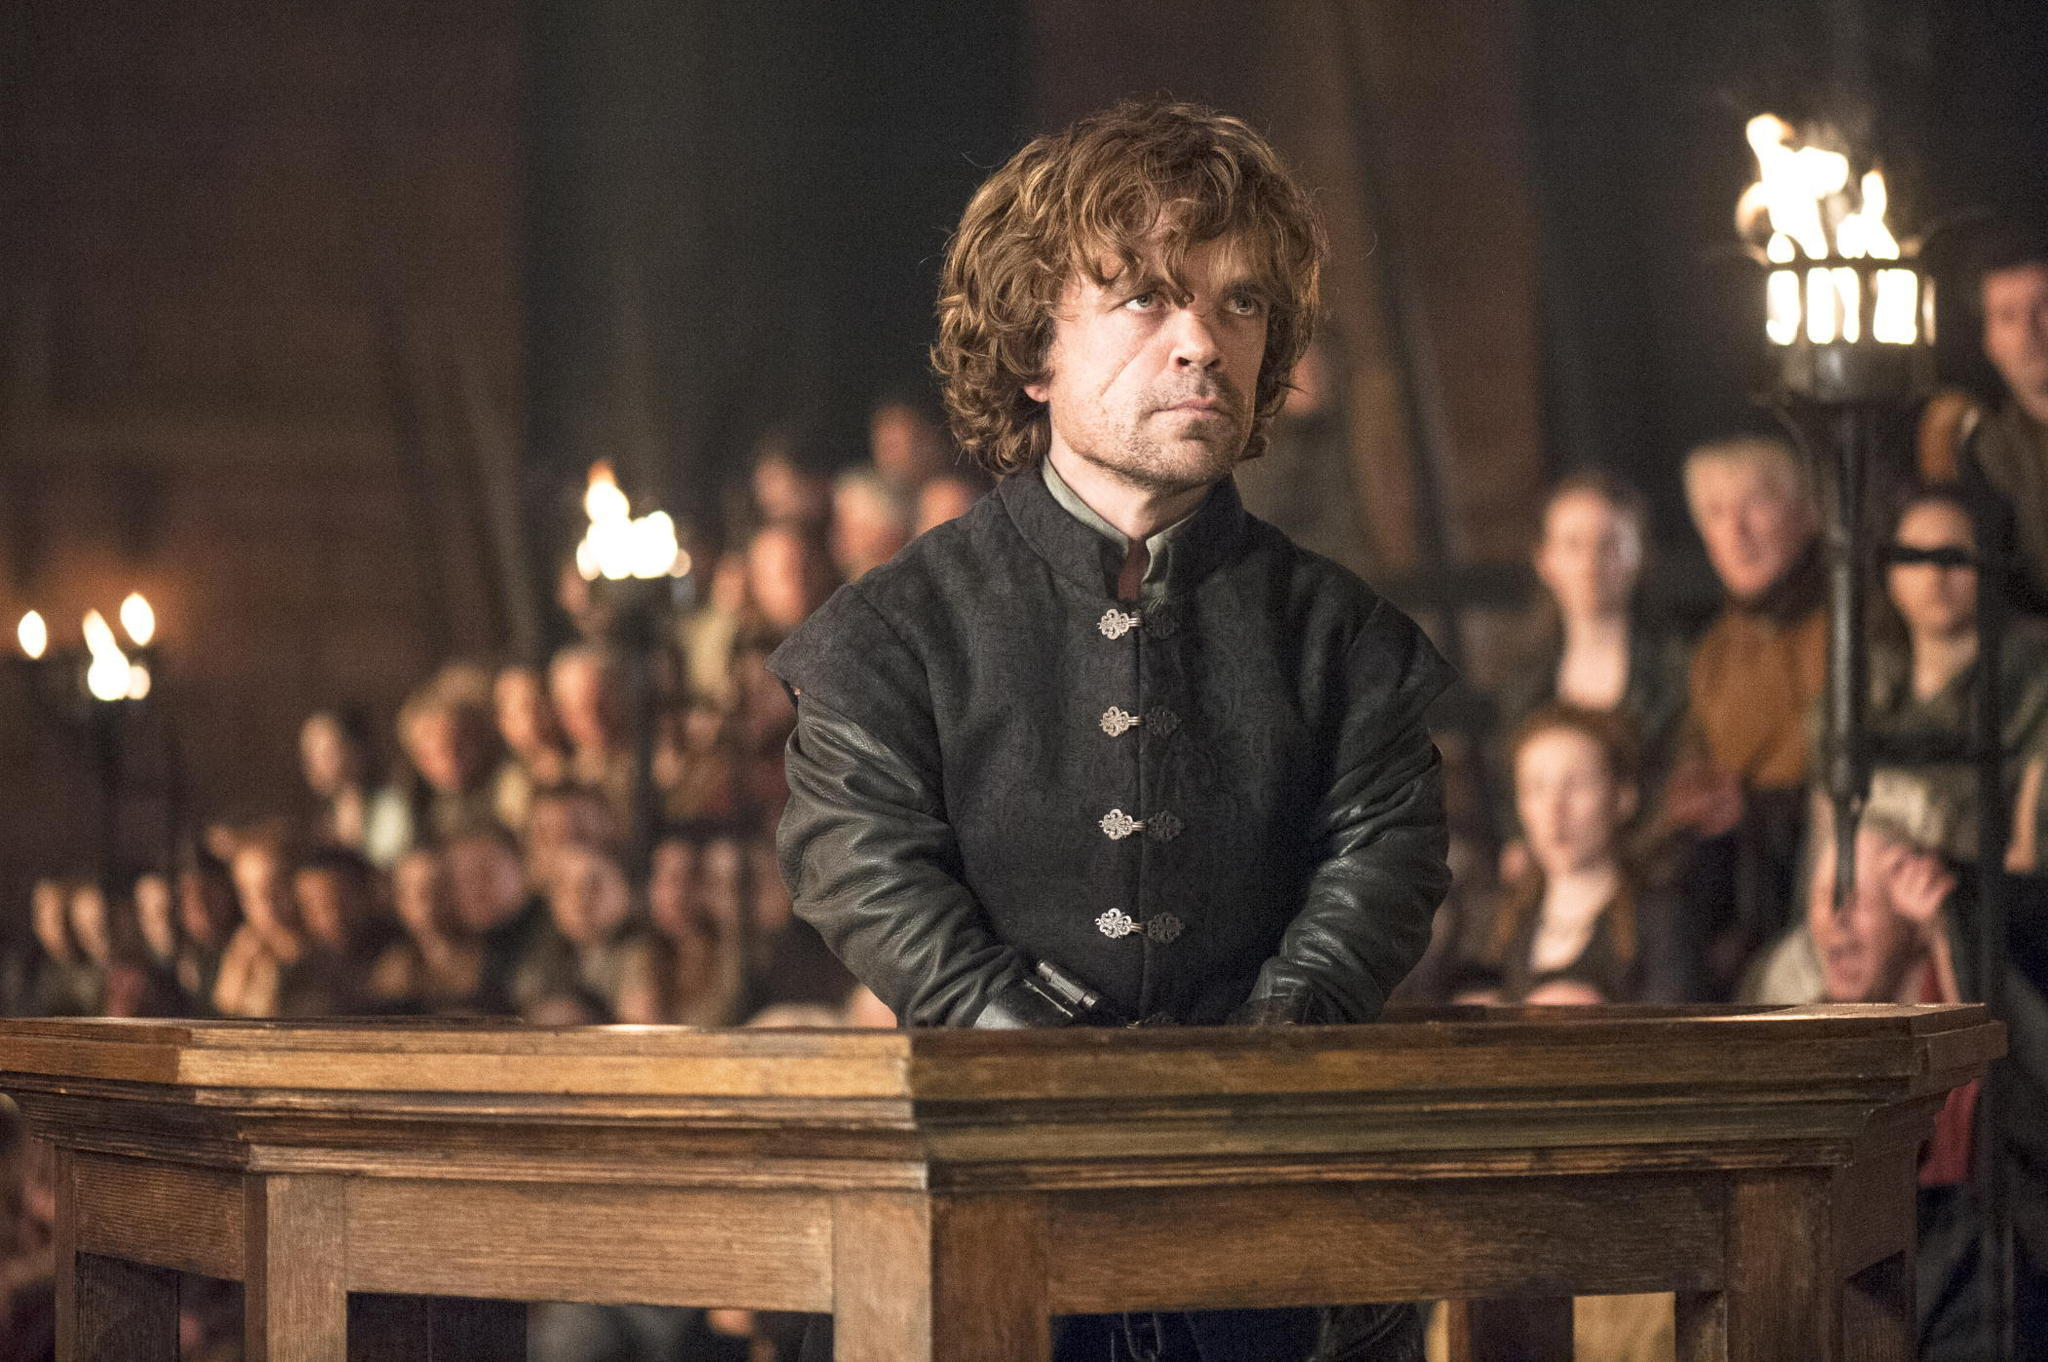 la-et-st-game-of-thrones-recap-falsely-accused-tyrion-stands-trial-20140511